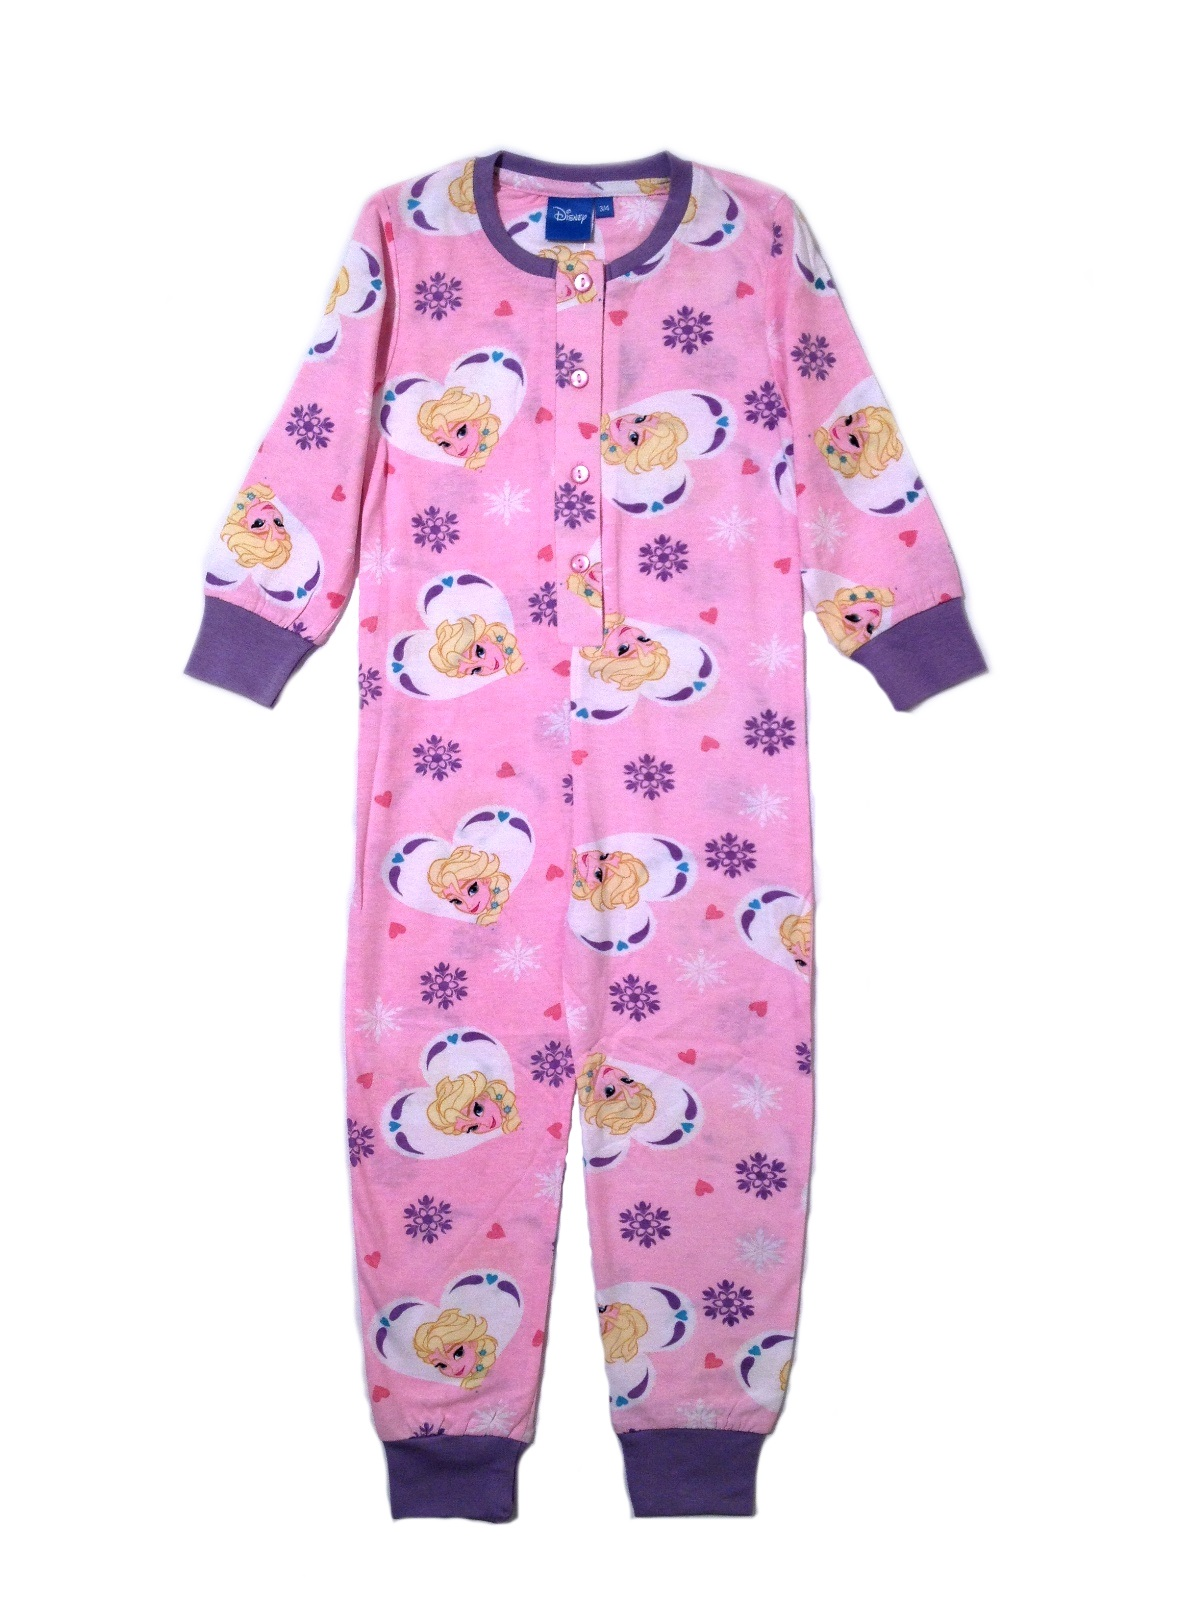 Find great deals on eBay for onesie size Shop with confidence.